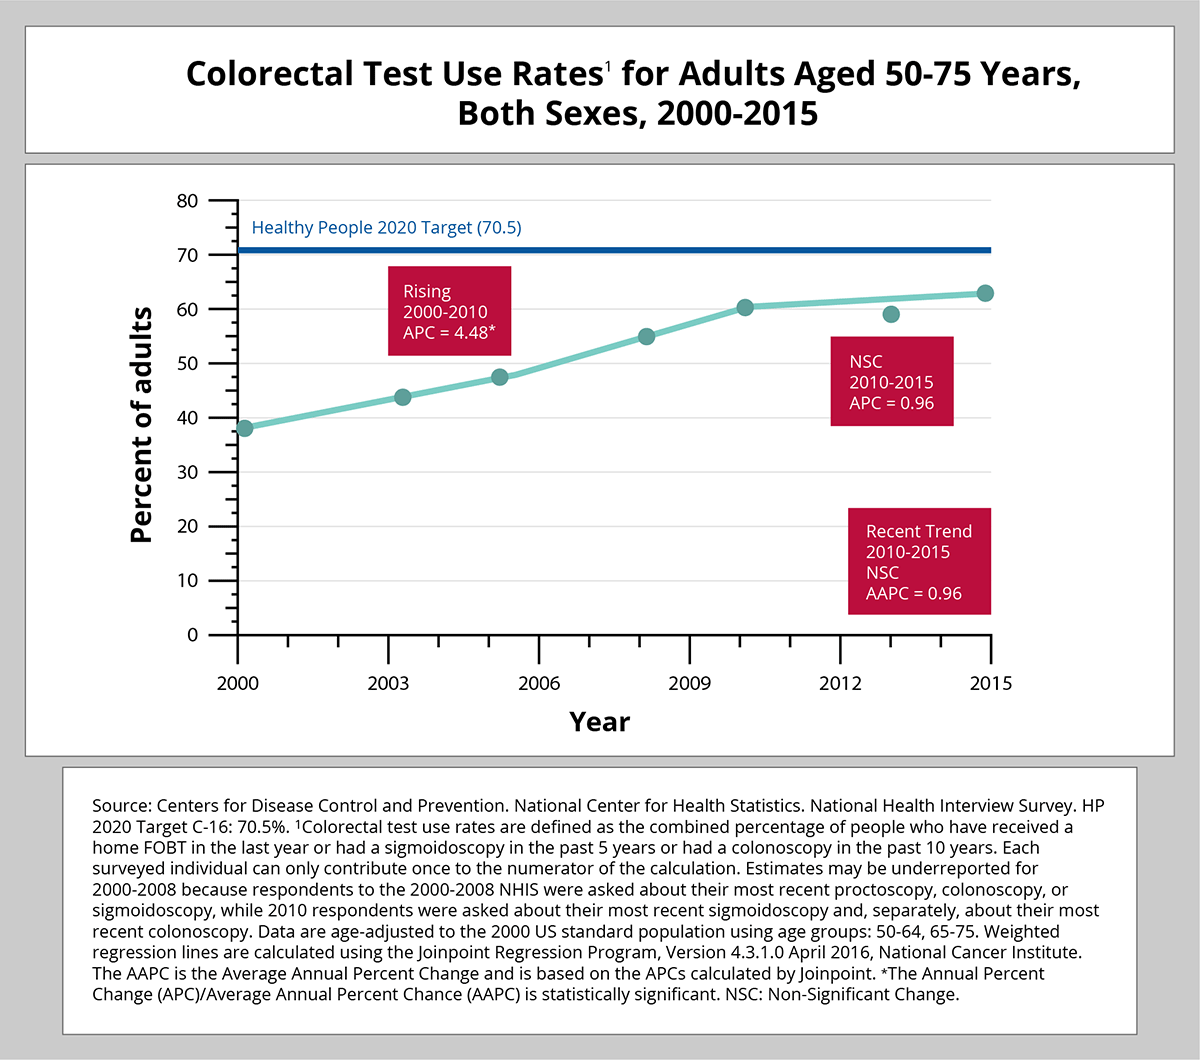 Source: Centers for Disease Control and Prevention. National Center for Health Statistics. National Health Interview Survey. HP 2020 Target C-16: 70.5%. 1Colorectal test use rates are defined as the combined percentage of people who have received a home FOBT in the last year or had a sigmoidoscopy in the past 5 years or had a colonoscopy in the past 10 years. Each surveyed individual can only contribute once to the numerator of the calculation. Estimates may be underreported for 2000-2008 because respondents to the 2000-2008 NHIS were asked about their most recent proctoscopy, colonoscopy, or sigmoidoscopy, while 2010 respondents were asked about their most recent sigmoidoscopy and, separately, about their most recent colonoscopy. Data are age-adjusted to the 2000 US standard population using age groups: 50-64, 65-75. Weighted regression lines are calculated using the Join point Regression Program, Version 4.3.1.0 April 2016, National Cancer Institute. The AAPC is the Average Annual Percent Change and is based on the APCs ca lcu lated by Join point. *The Annual Percent Change (APC)/Average Annual Percent Chance (AAPC) is statistica lly significant. NSC: Non-Significant Change.